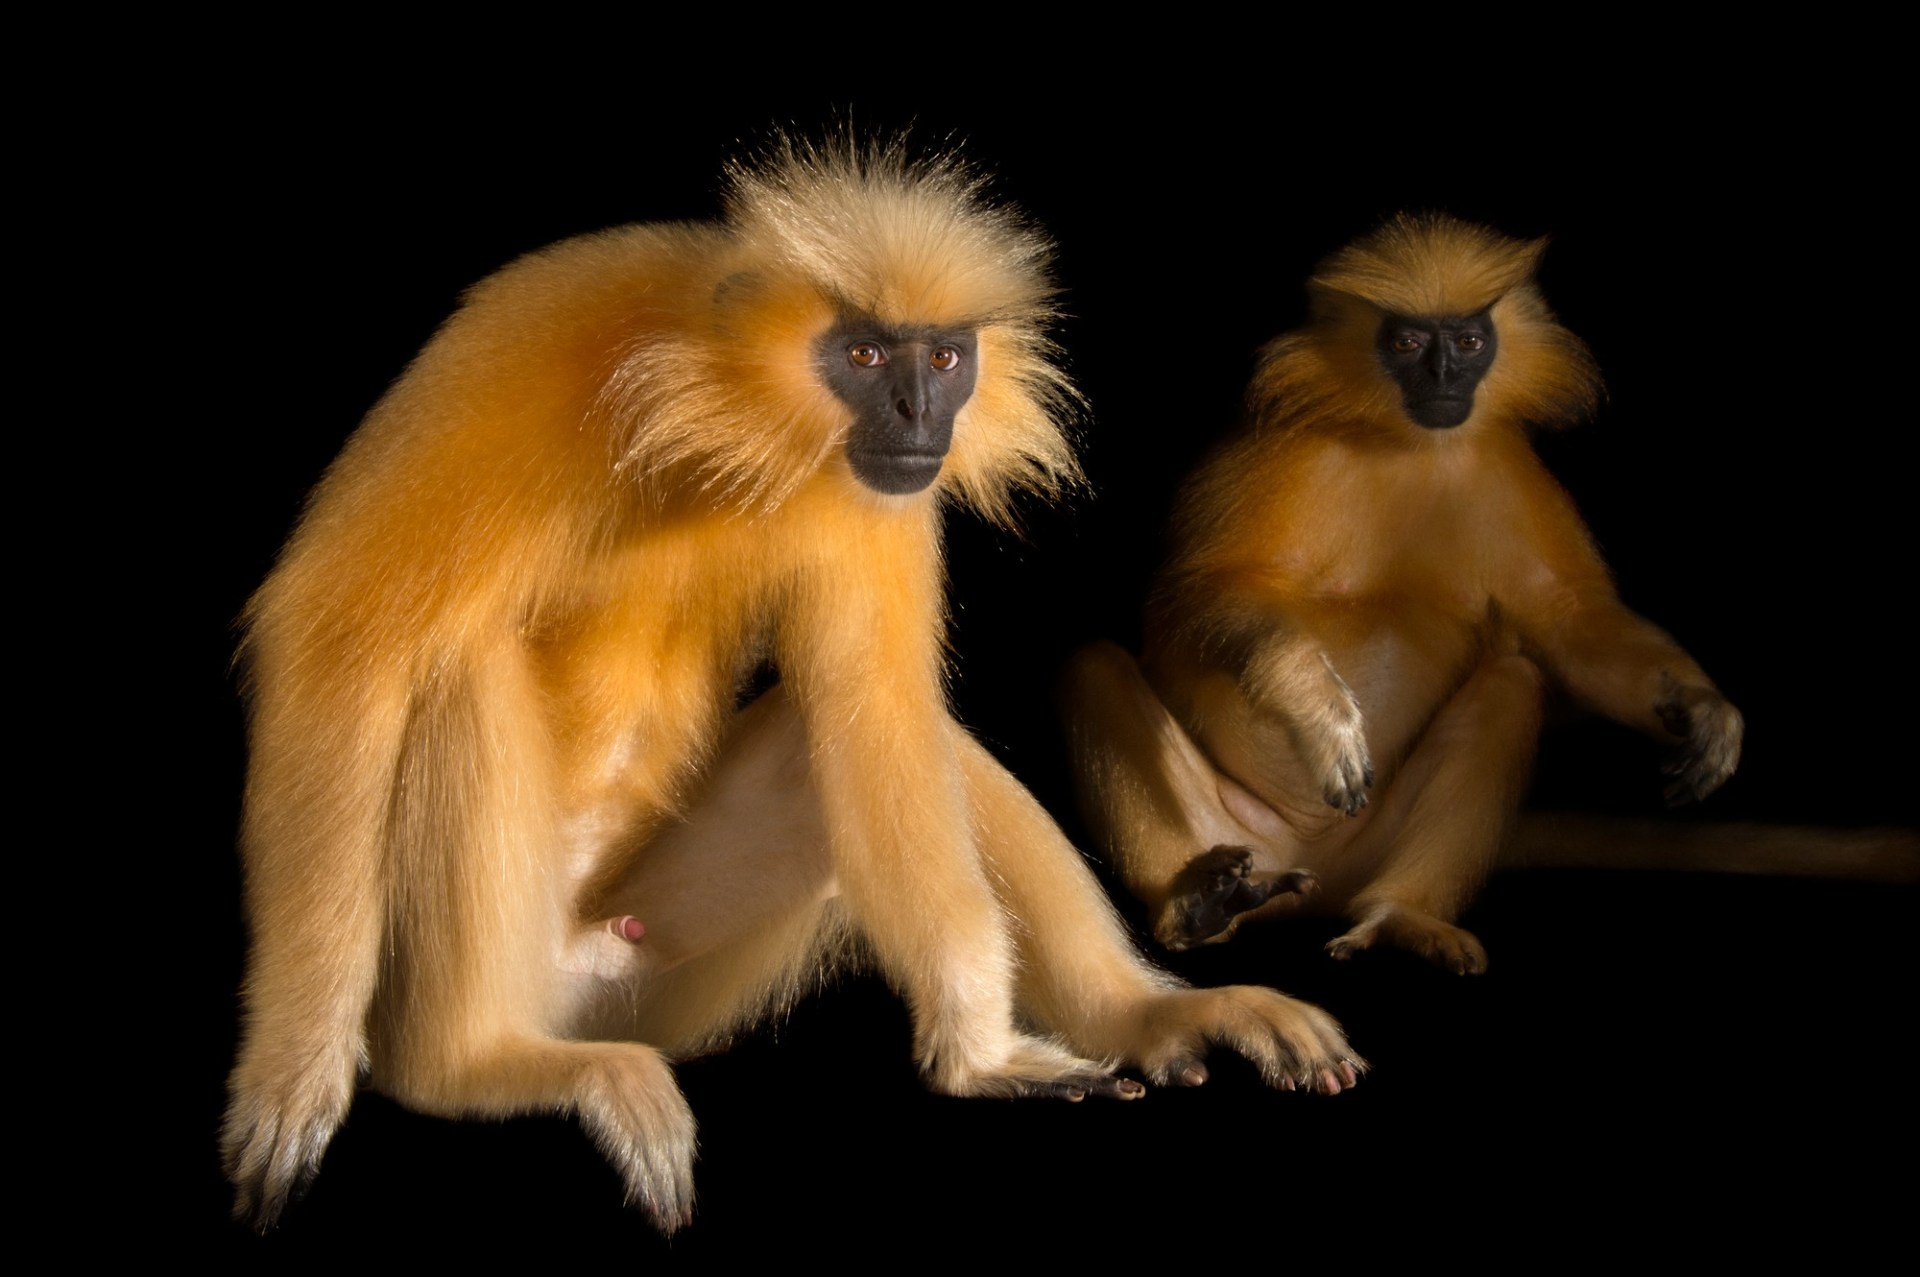 Picture of endangered (IUCN) and federally endangered Gee's golden langurs (Trachypithecus geei) at the Assam State Zoo cum Botanical Garden.